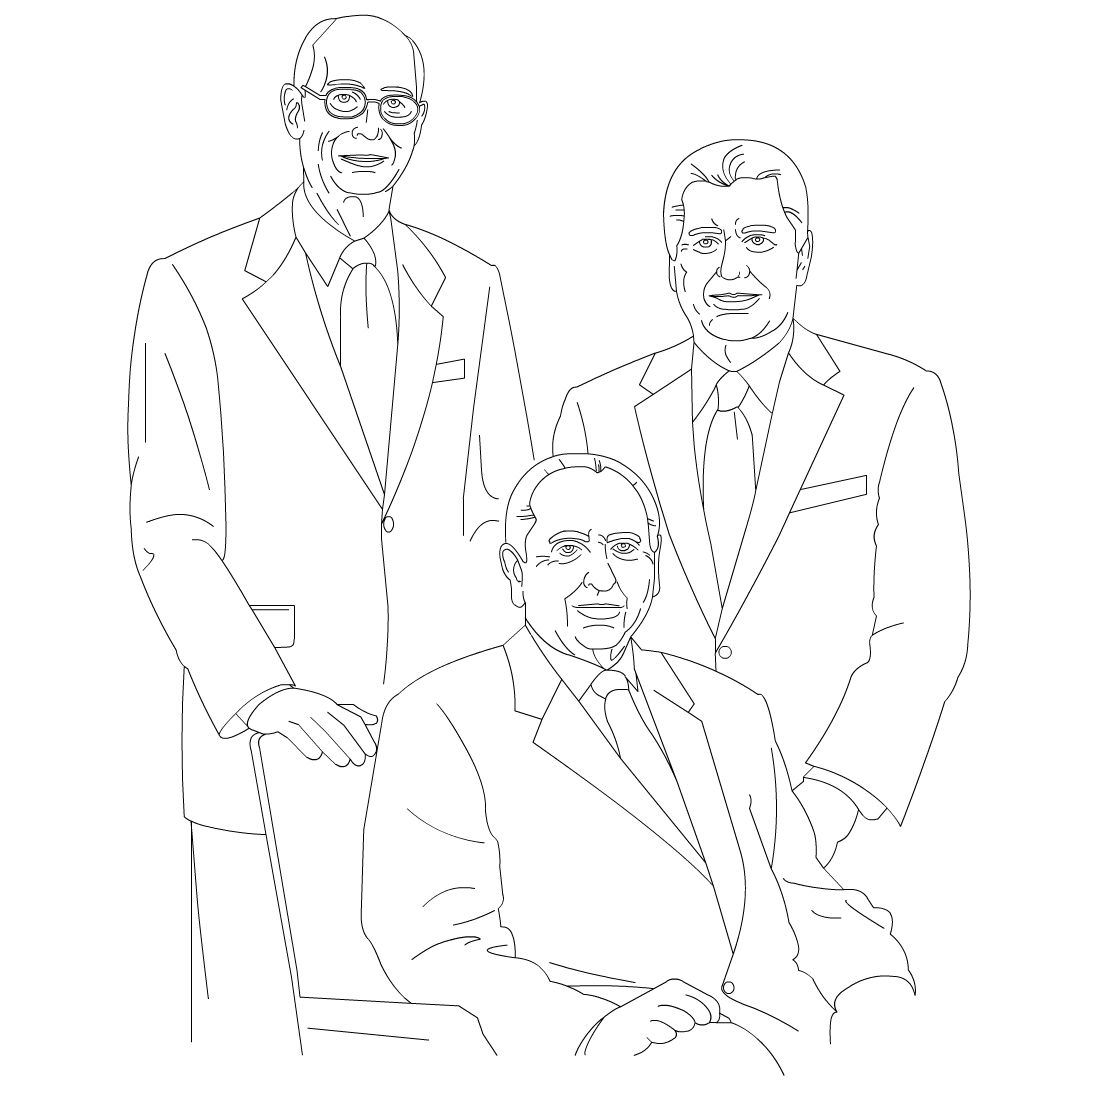 hight resolution of free lds clipart to color for primary children first presidency monson eyring uchtdorf